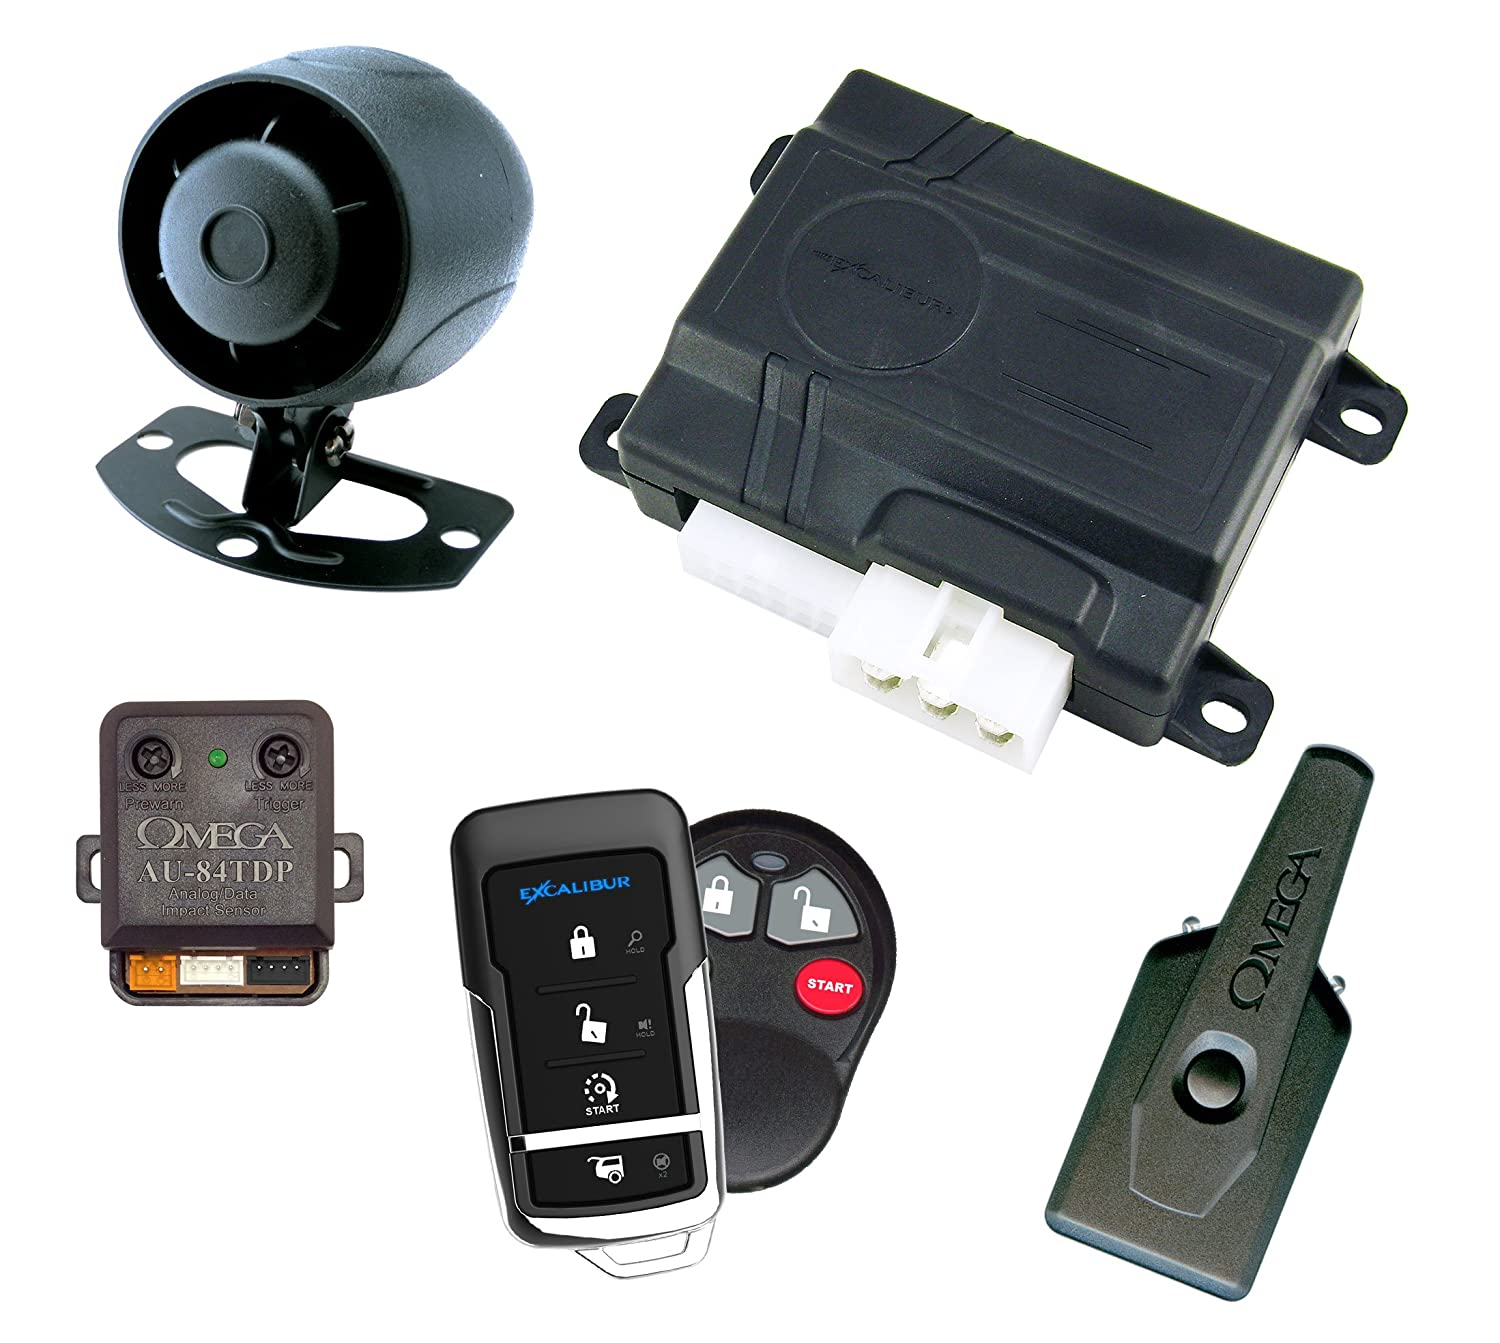 AL360EDP Deluxe 1-Way Remote Start and Security System Excalibur